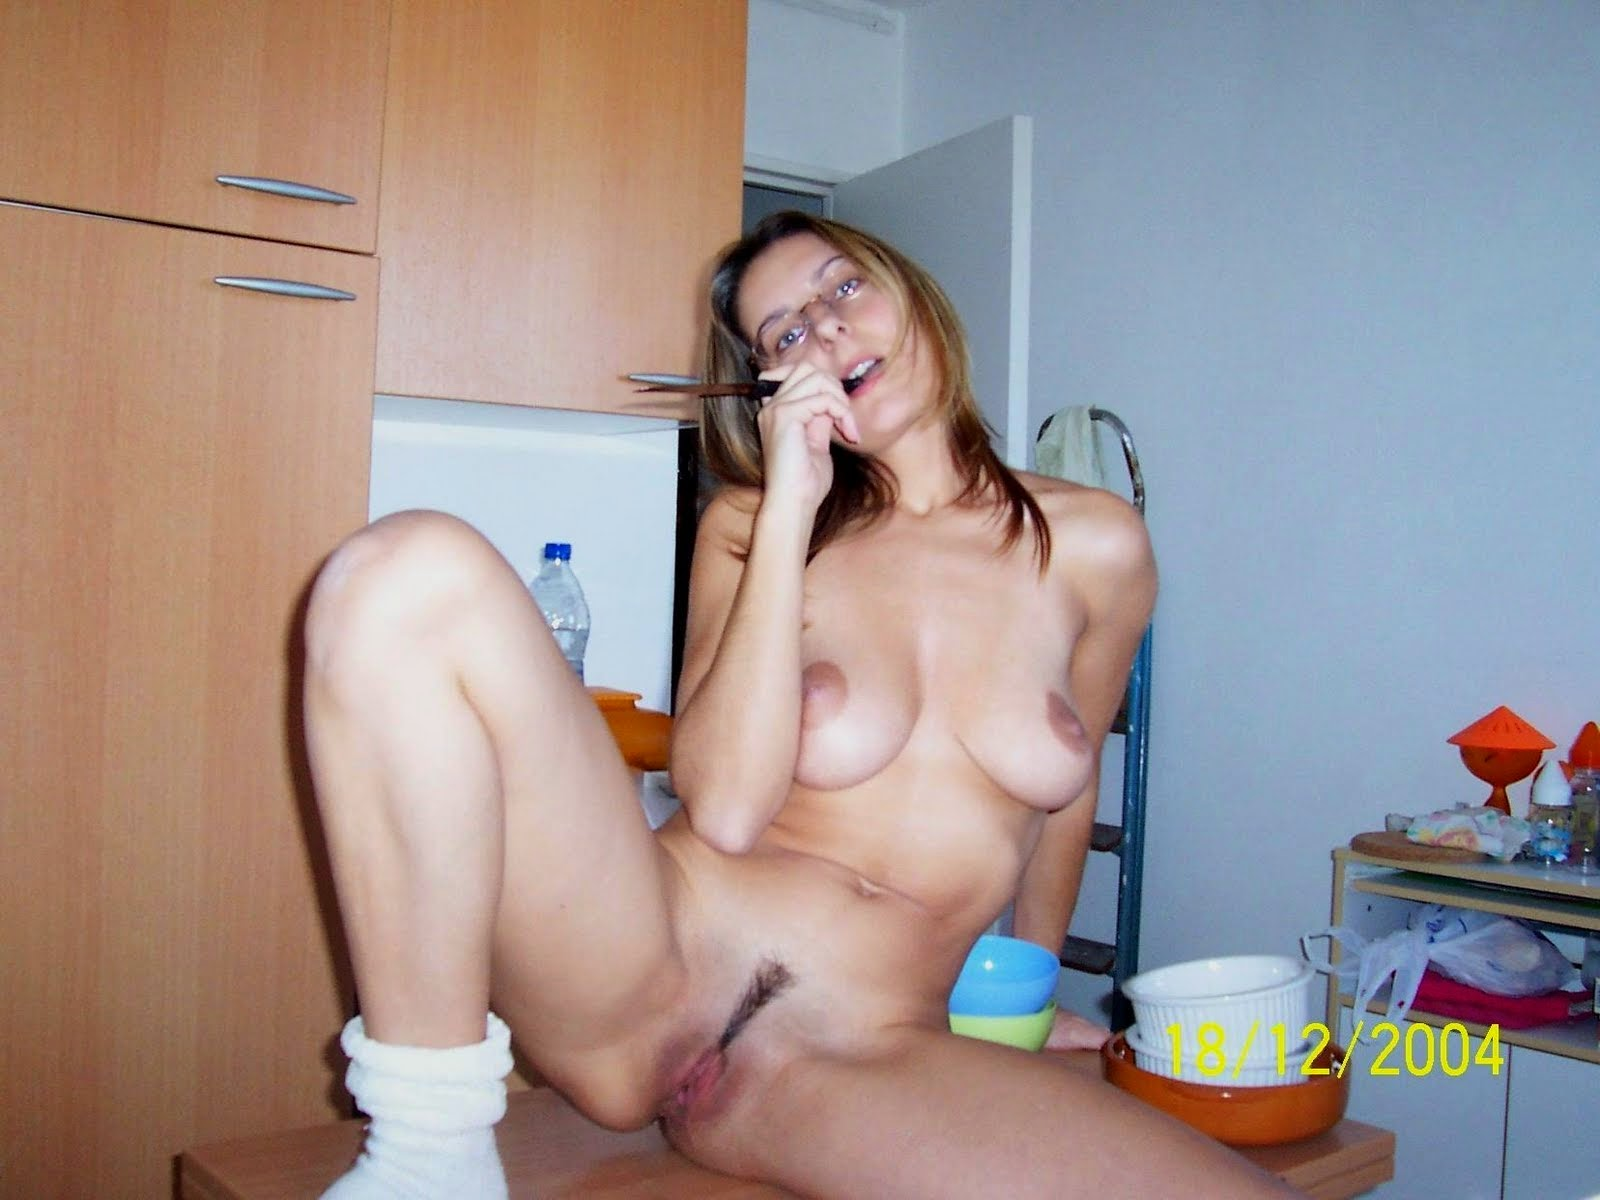 Nude self girl shot nerd